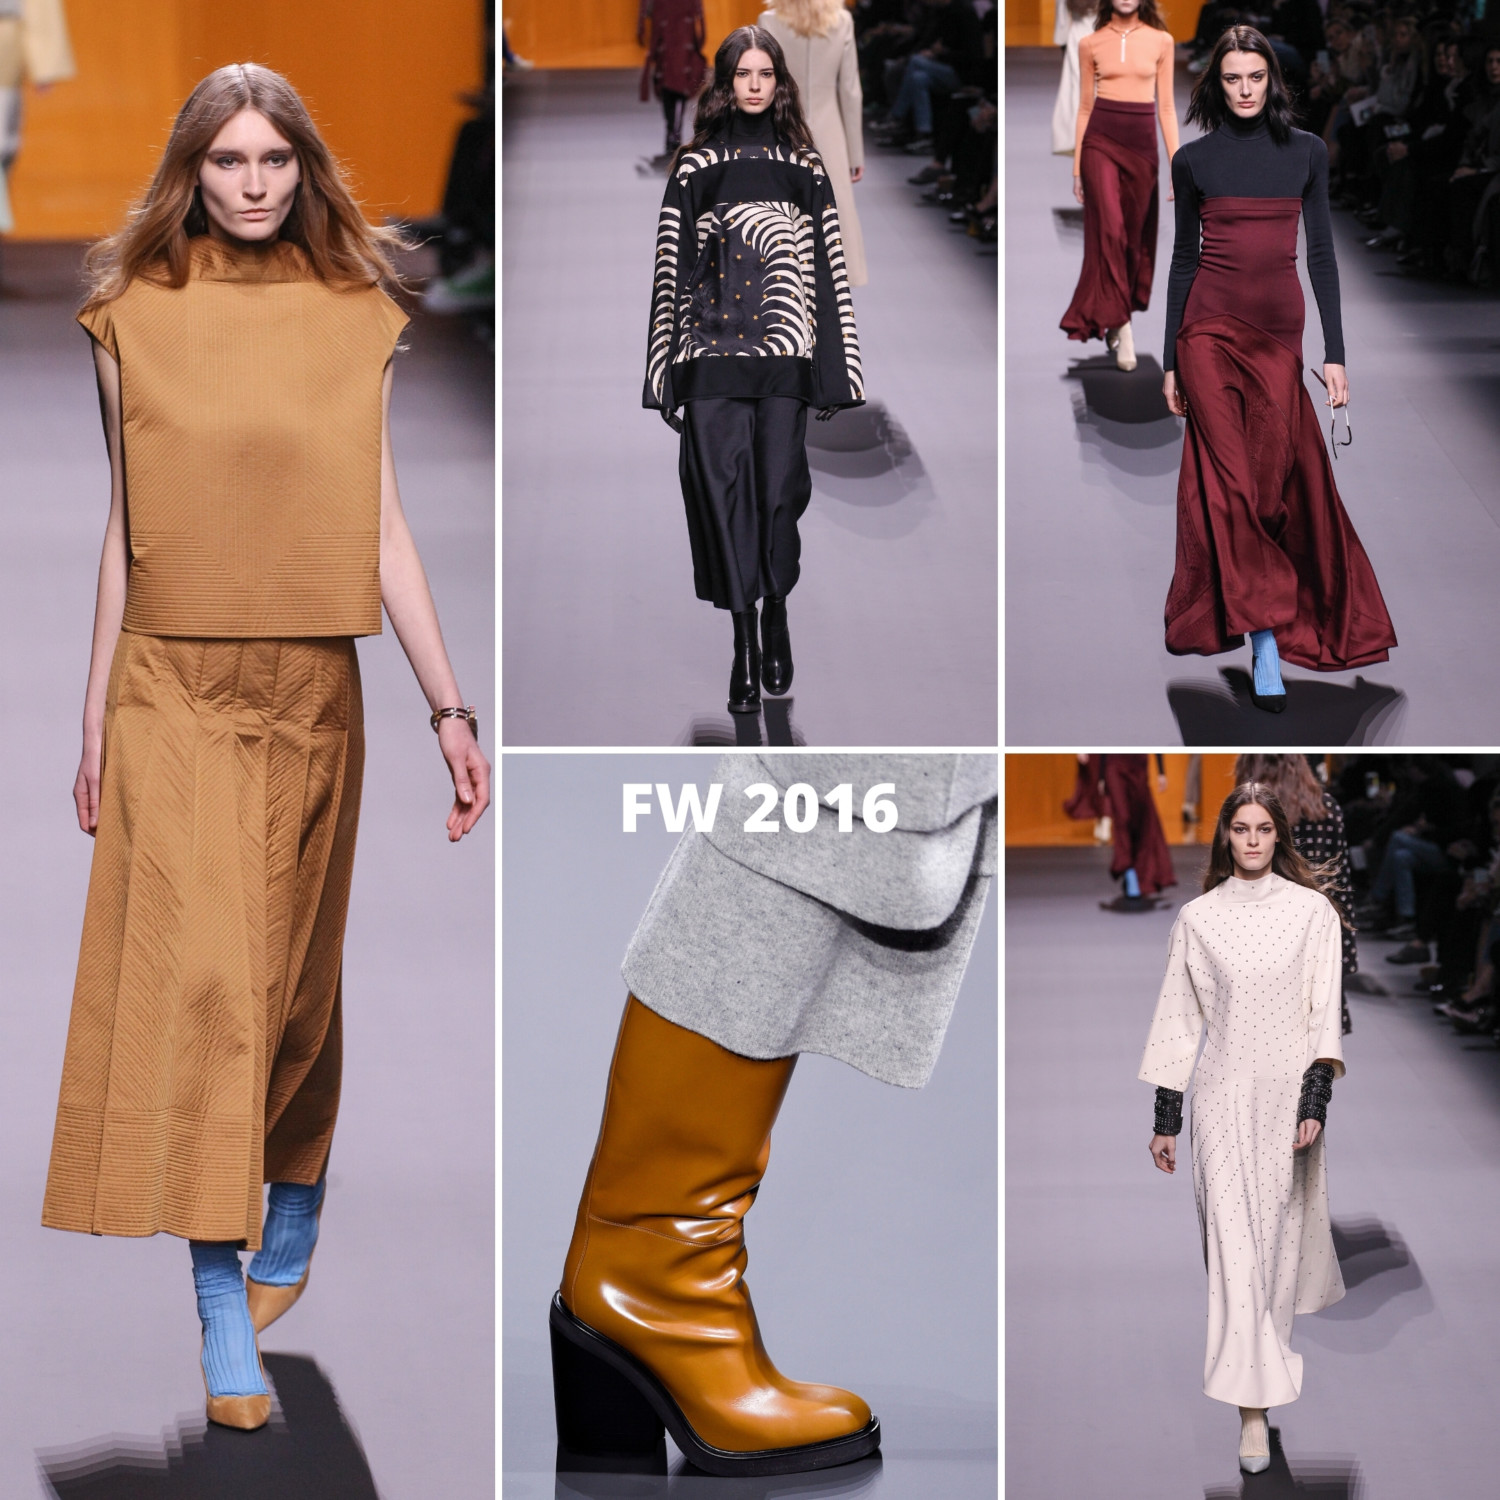 Hermes Fall Winter 2016